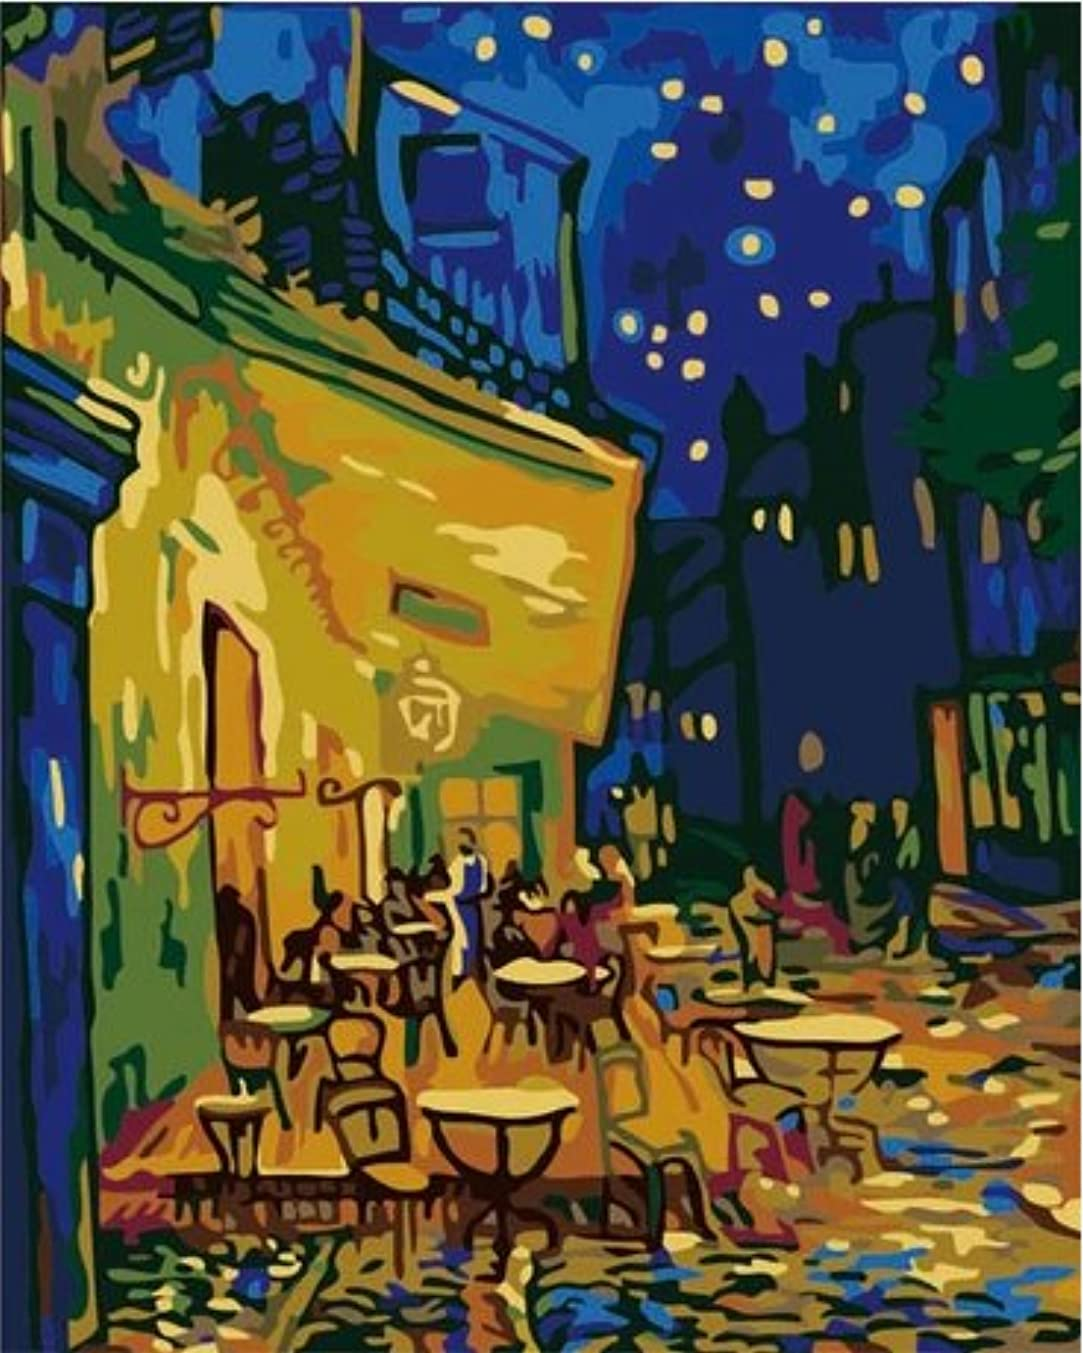 Colour Talk Diy oil painting, paint by number kit- worldwide famous oil painting The Night Cafe in the Place Lamartine in Arles by Van Gogh 1620 inch.